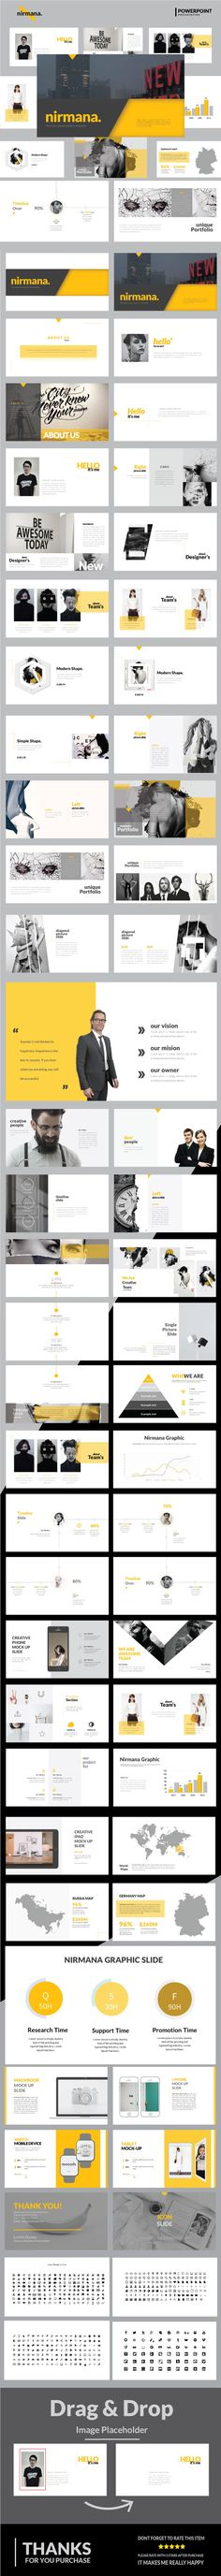 Simple Powerpoint Presentation Simple and Presentation - business presentation template